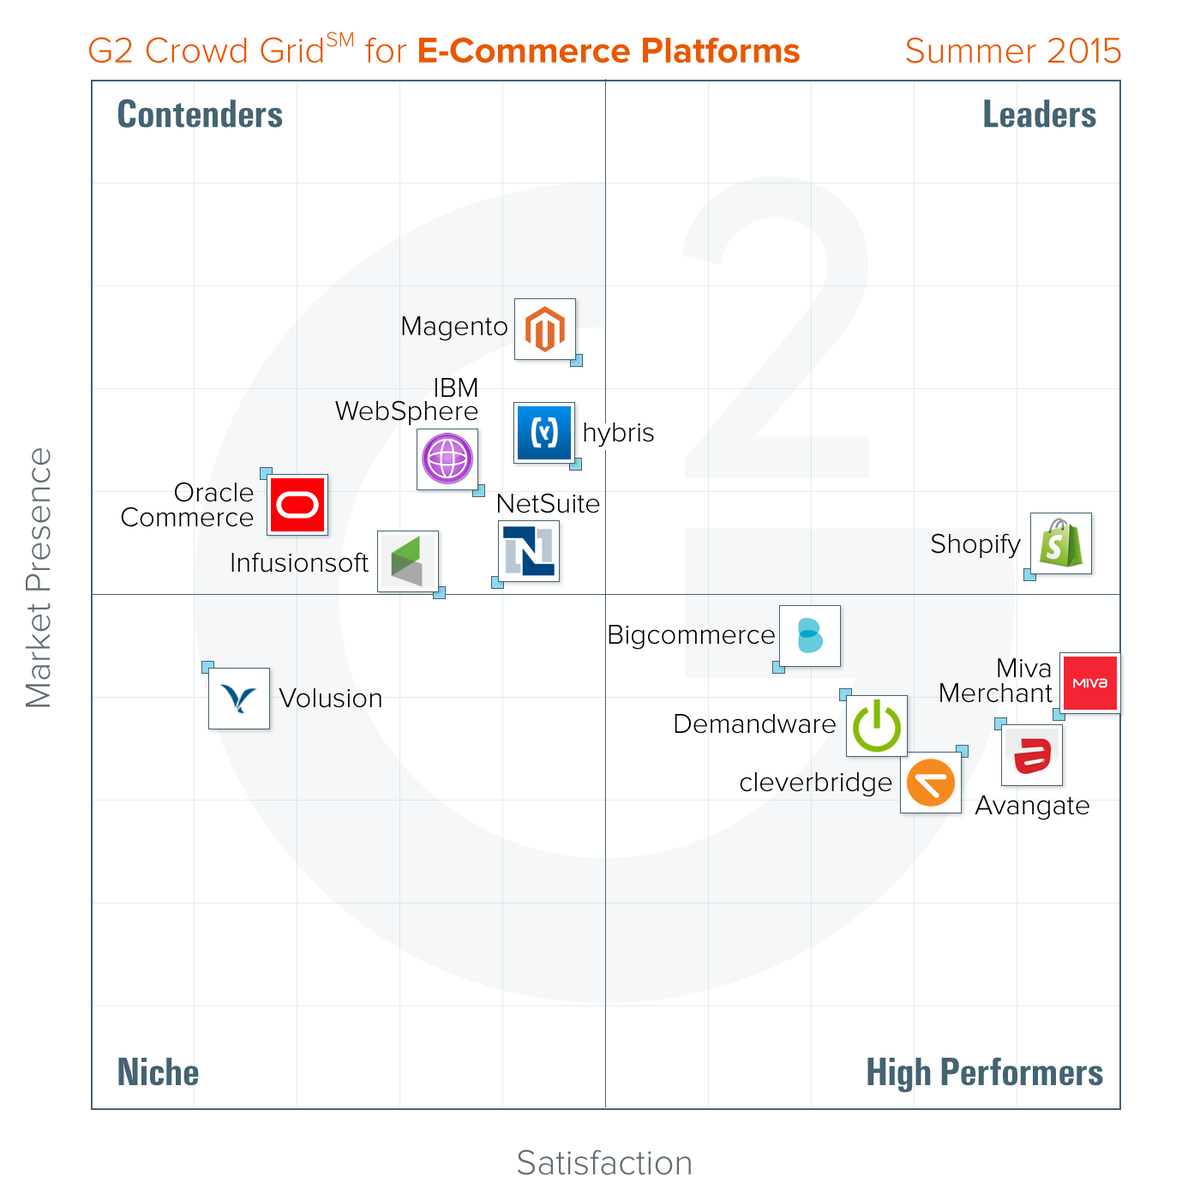 I get asked often about the best #ecommerce platforms - not an expert, but here are some recent rankings... http://t.co/4JNngDxmke